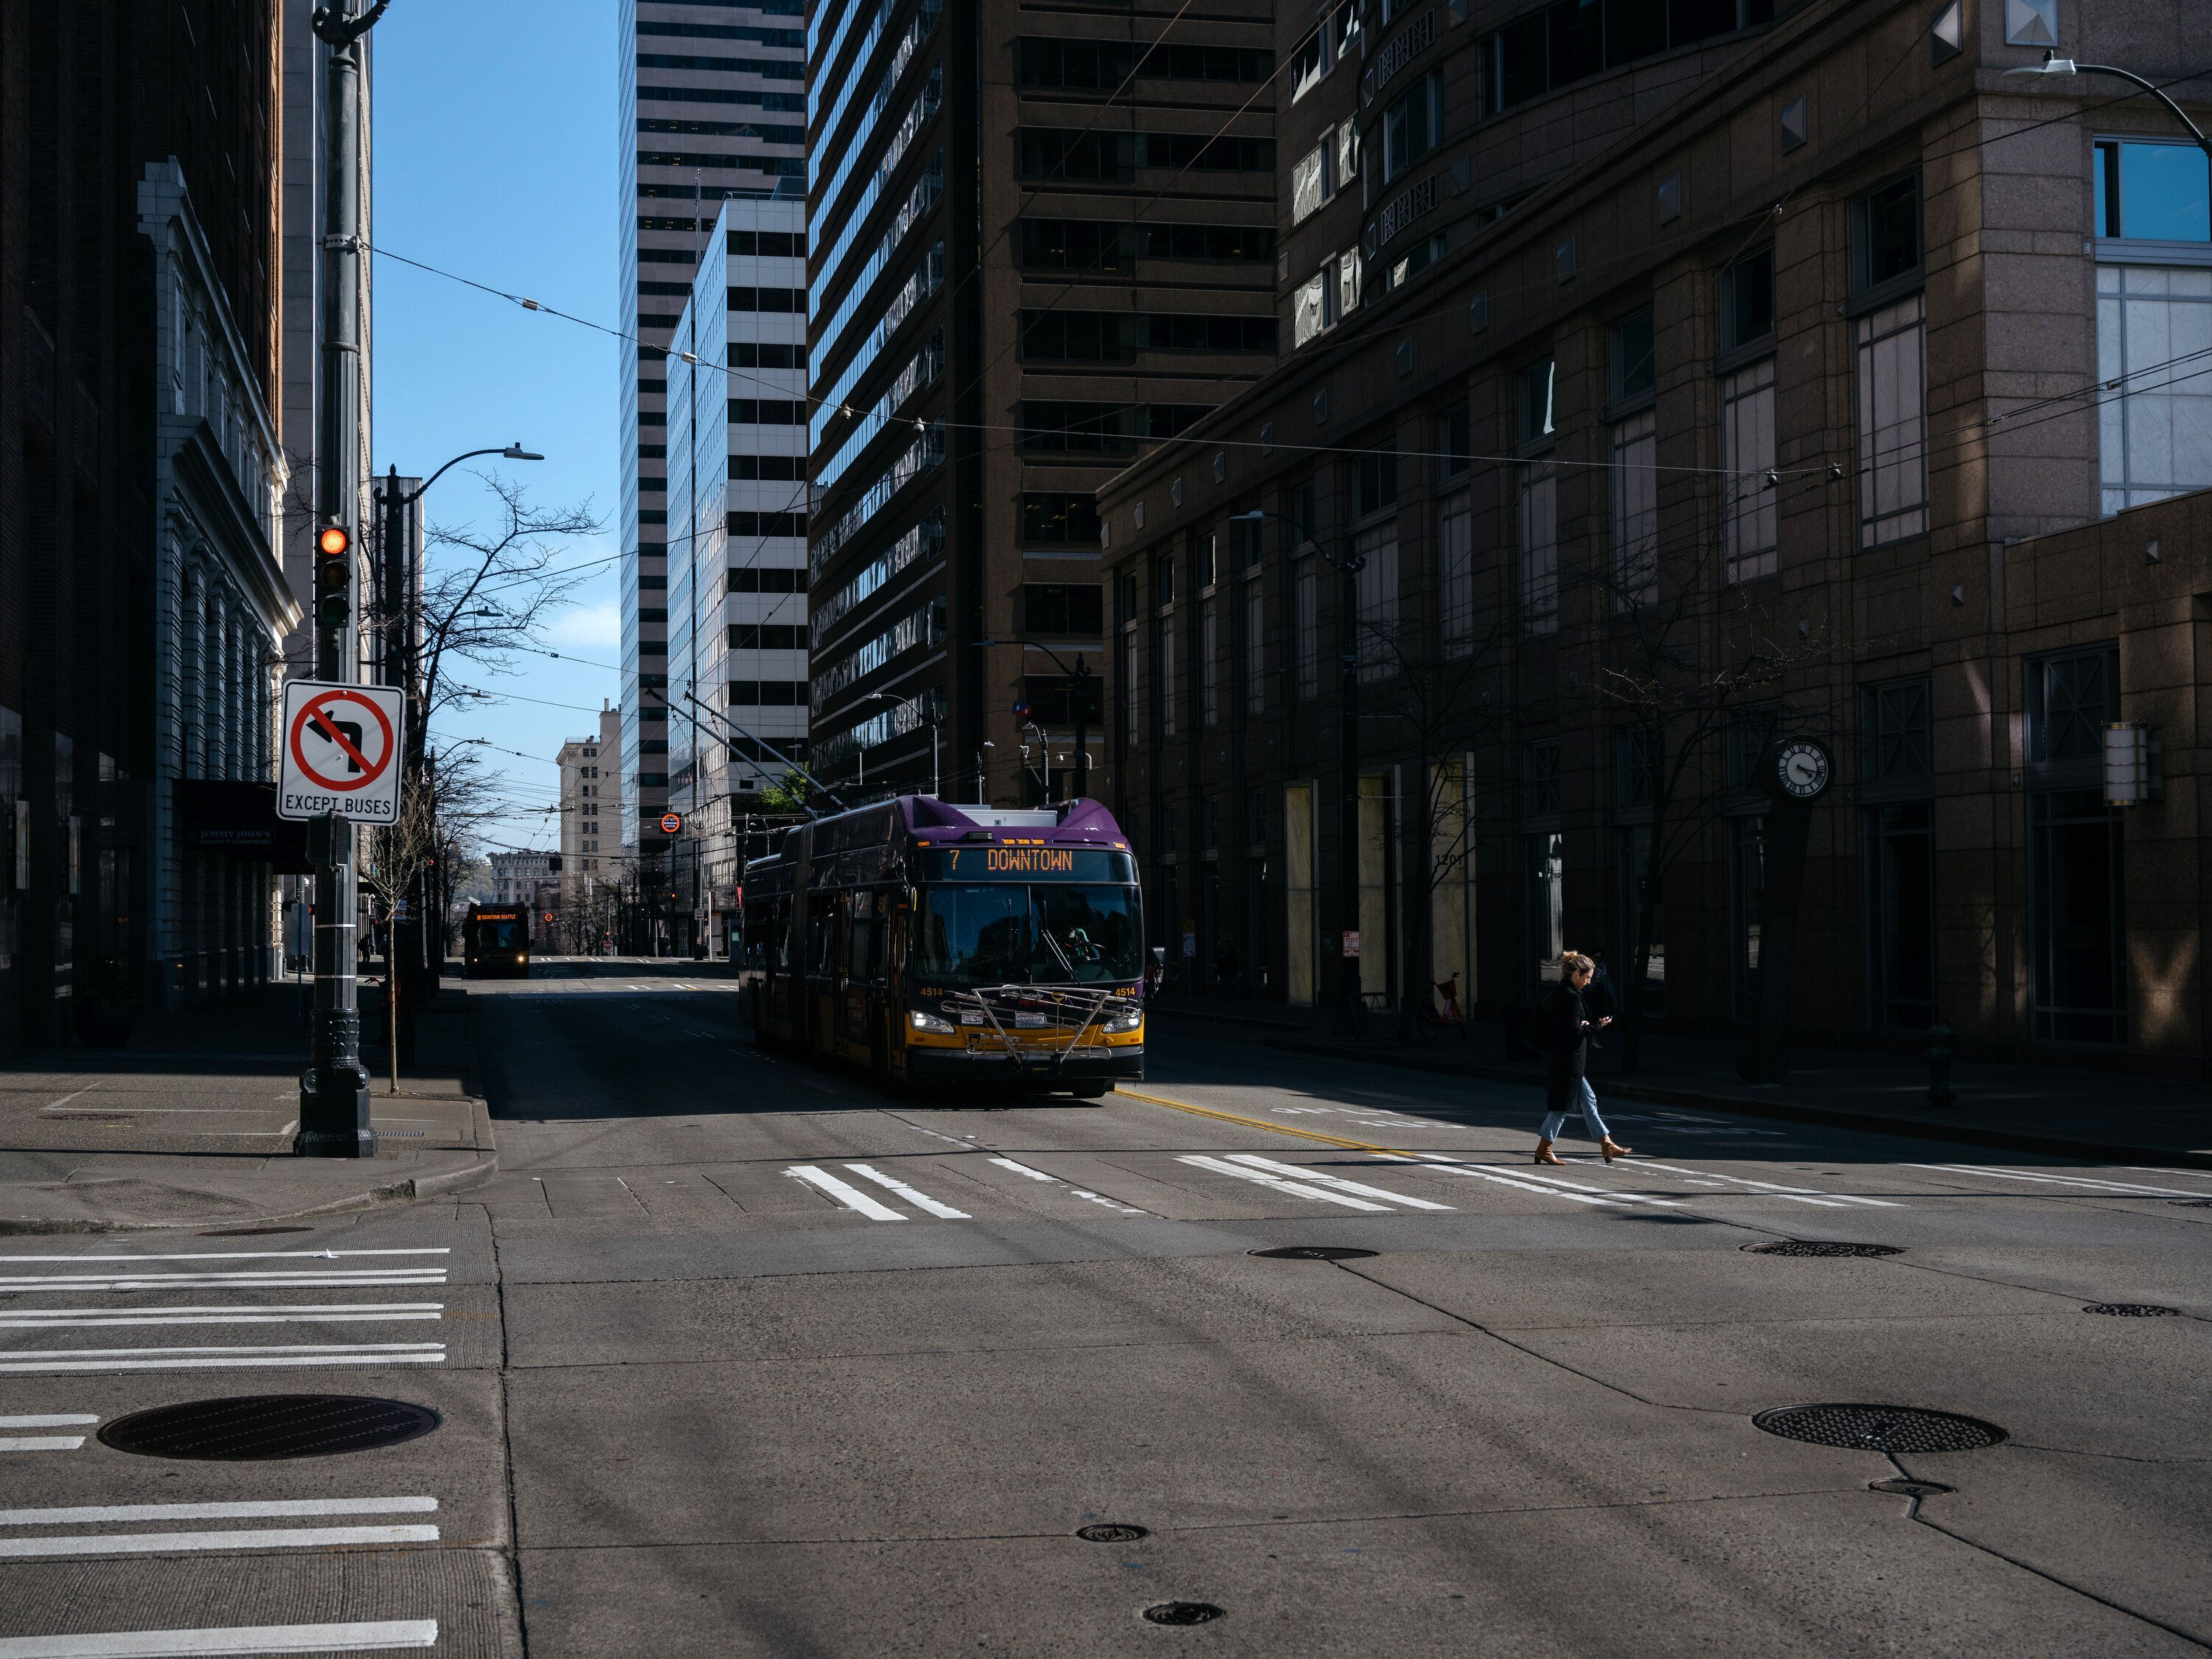 A King County Metro bus drives down 3rd Ave in downtown Seattle during what is usually rush hour.